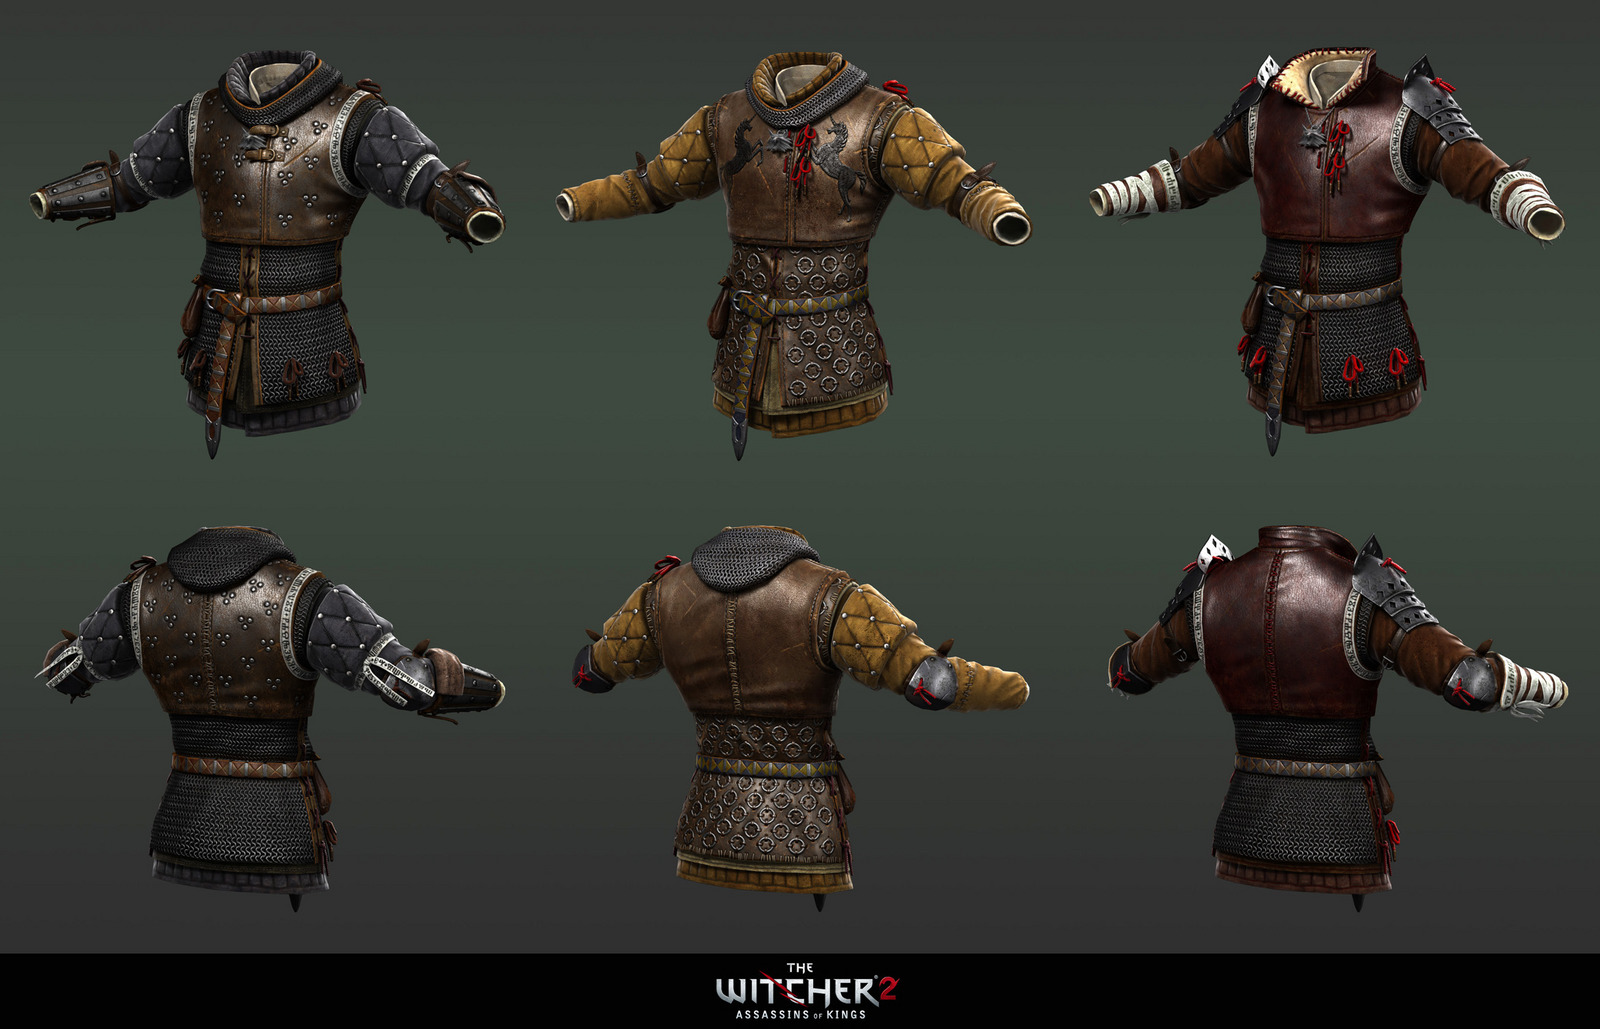 The Men Women Amp Puffy Shirts Of The Witcher 2